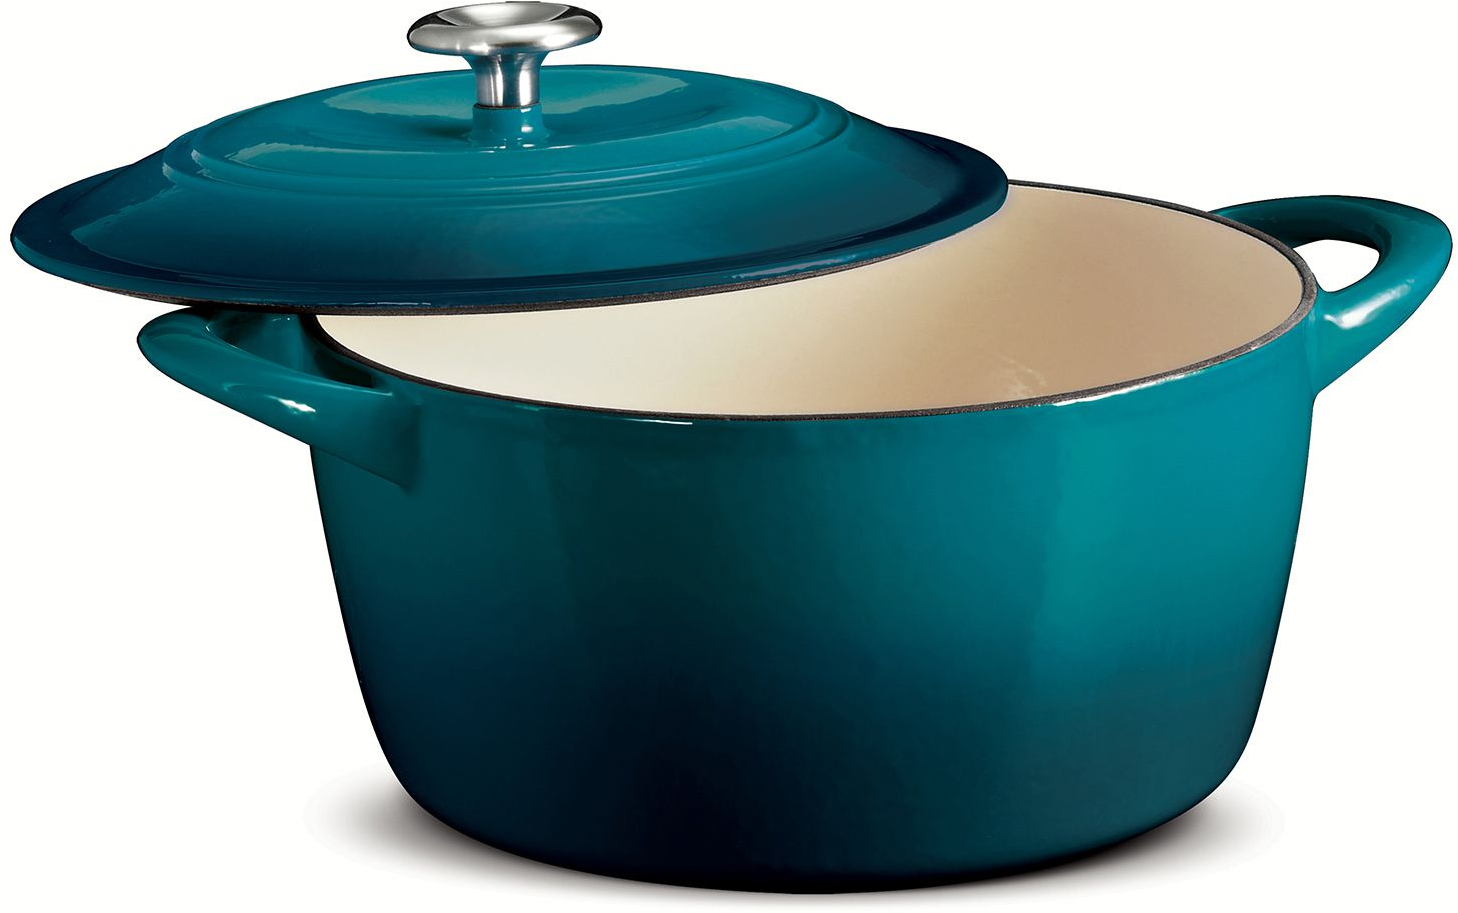 Tramontina Enameled Cast Iron 6.5 Qt Covered Round Dutch Oven - Sam's Club